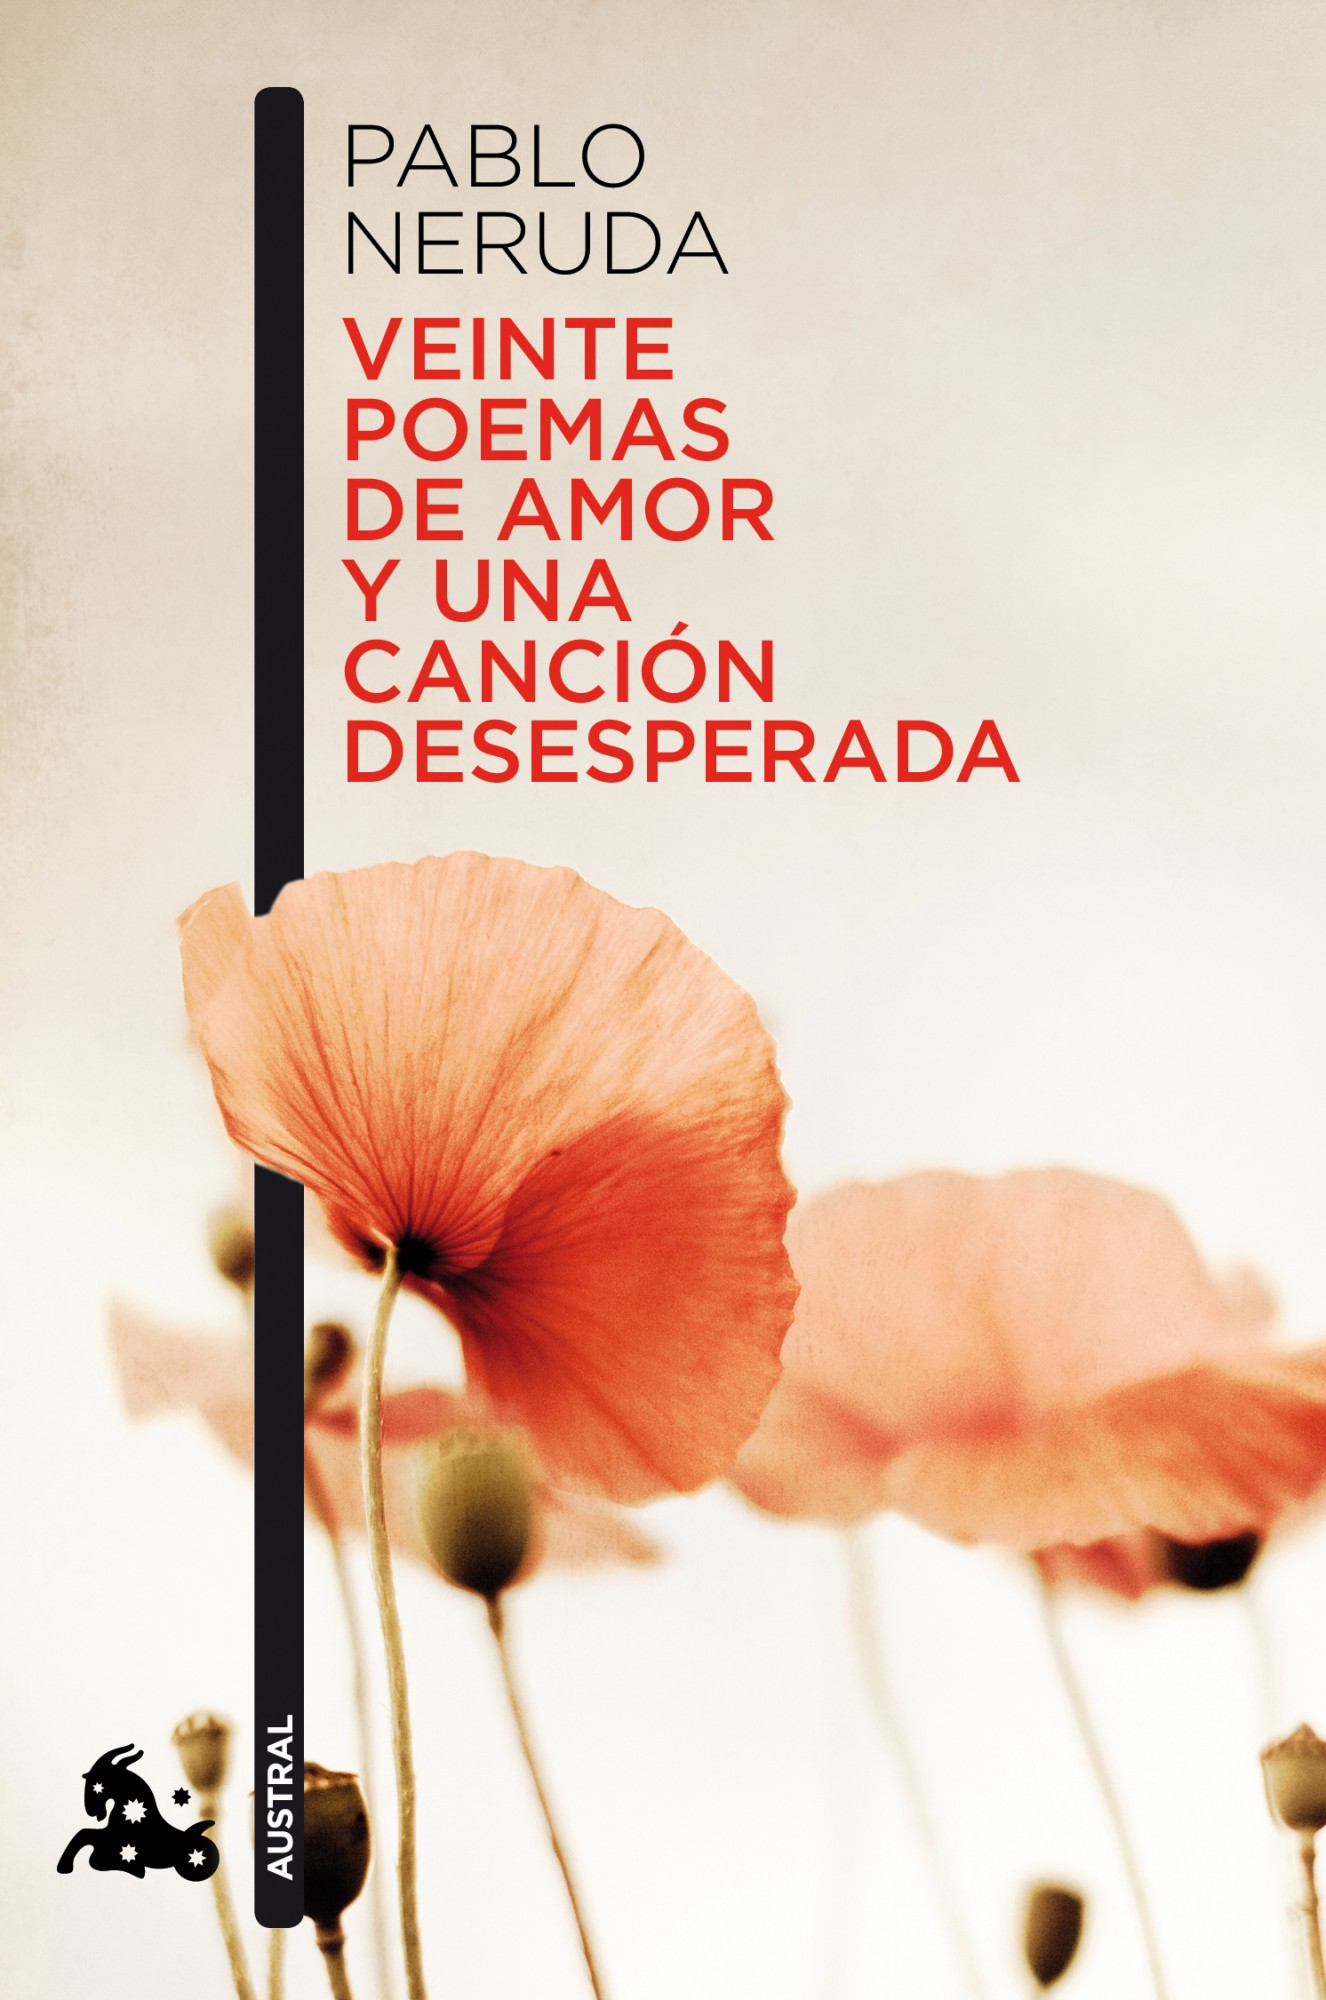 Pablo Neruda: Life and Career - 20th Century Voices: Discovering Trends,  Recognizing Influences